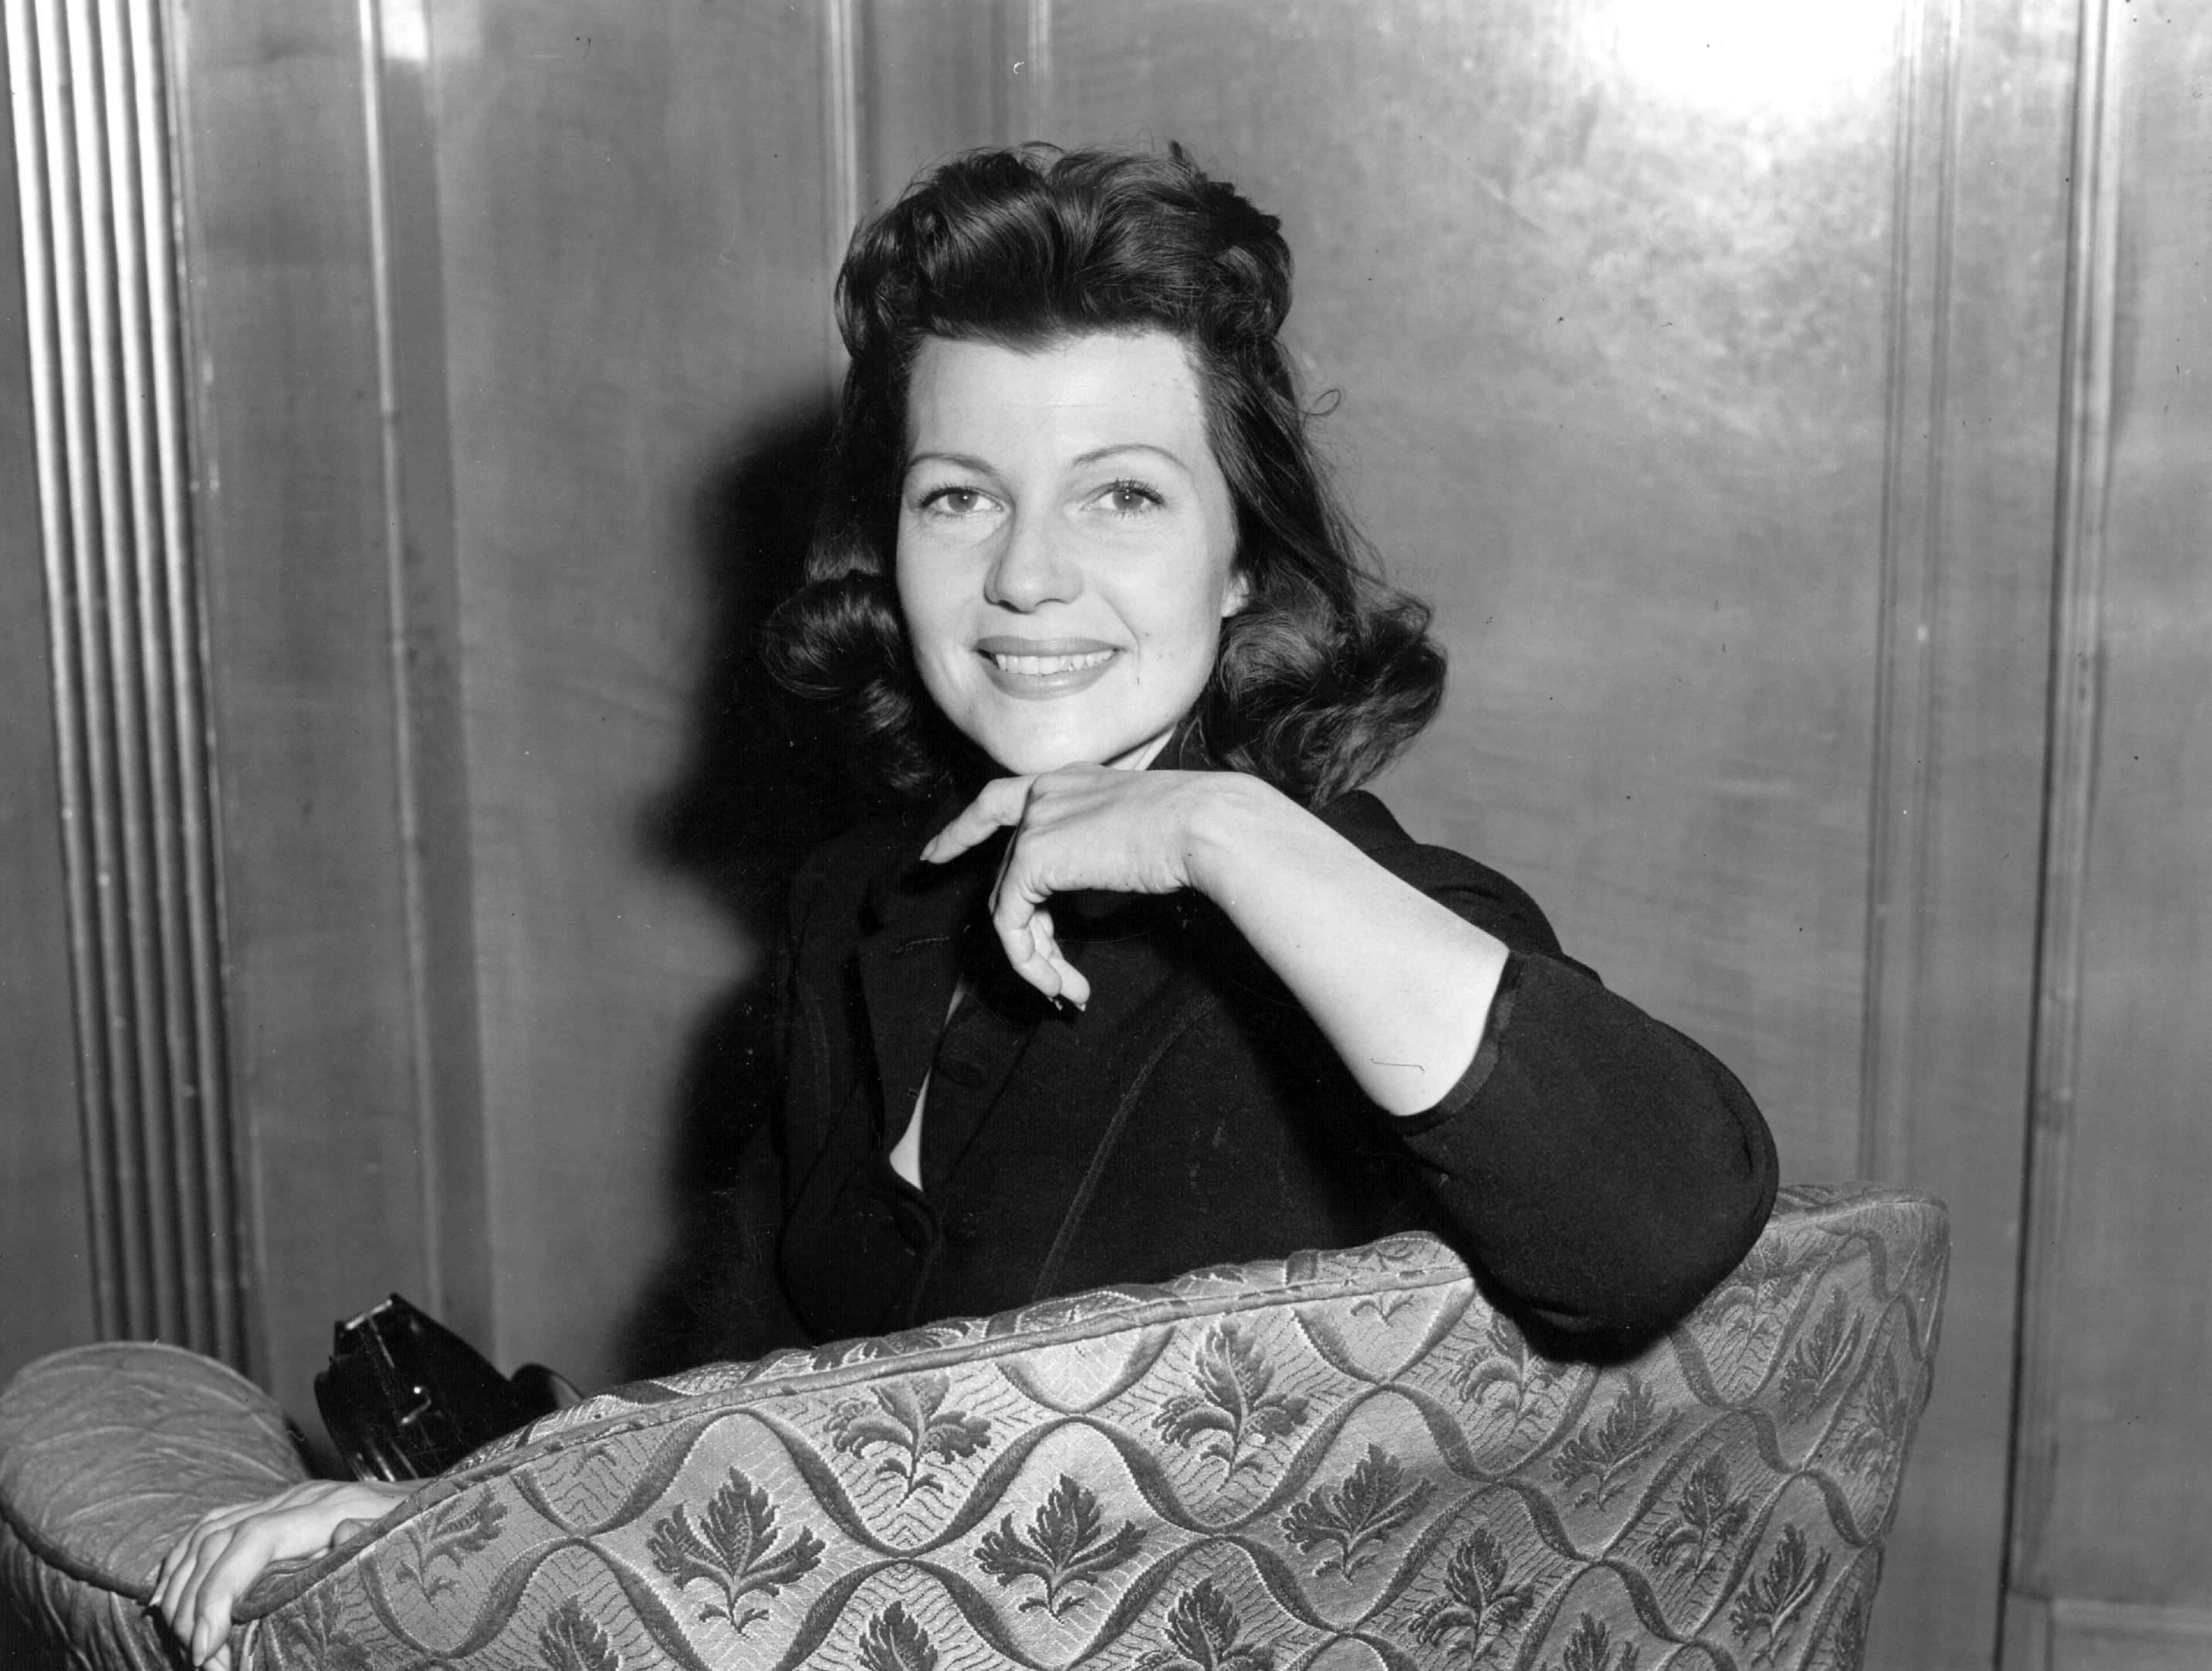 Rita Hayworth at the Dorchester Hotel, London. | Source: Getty Images